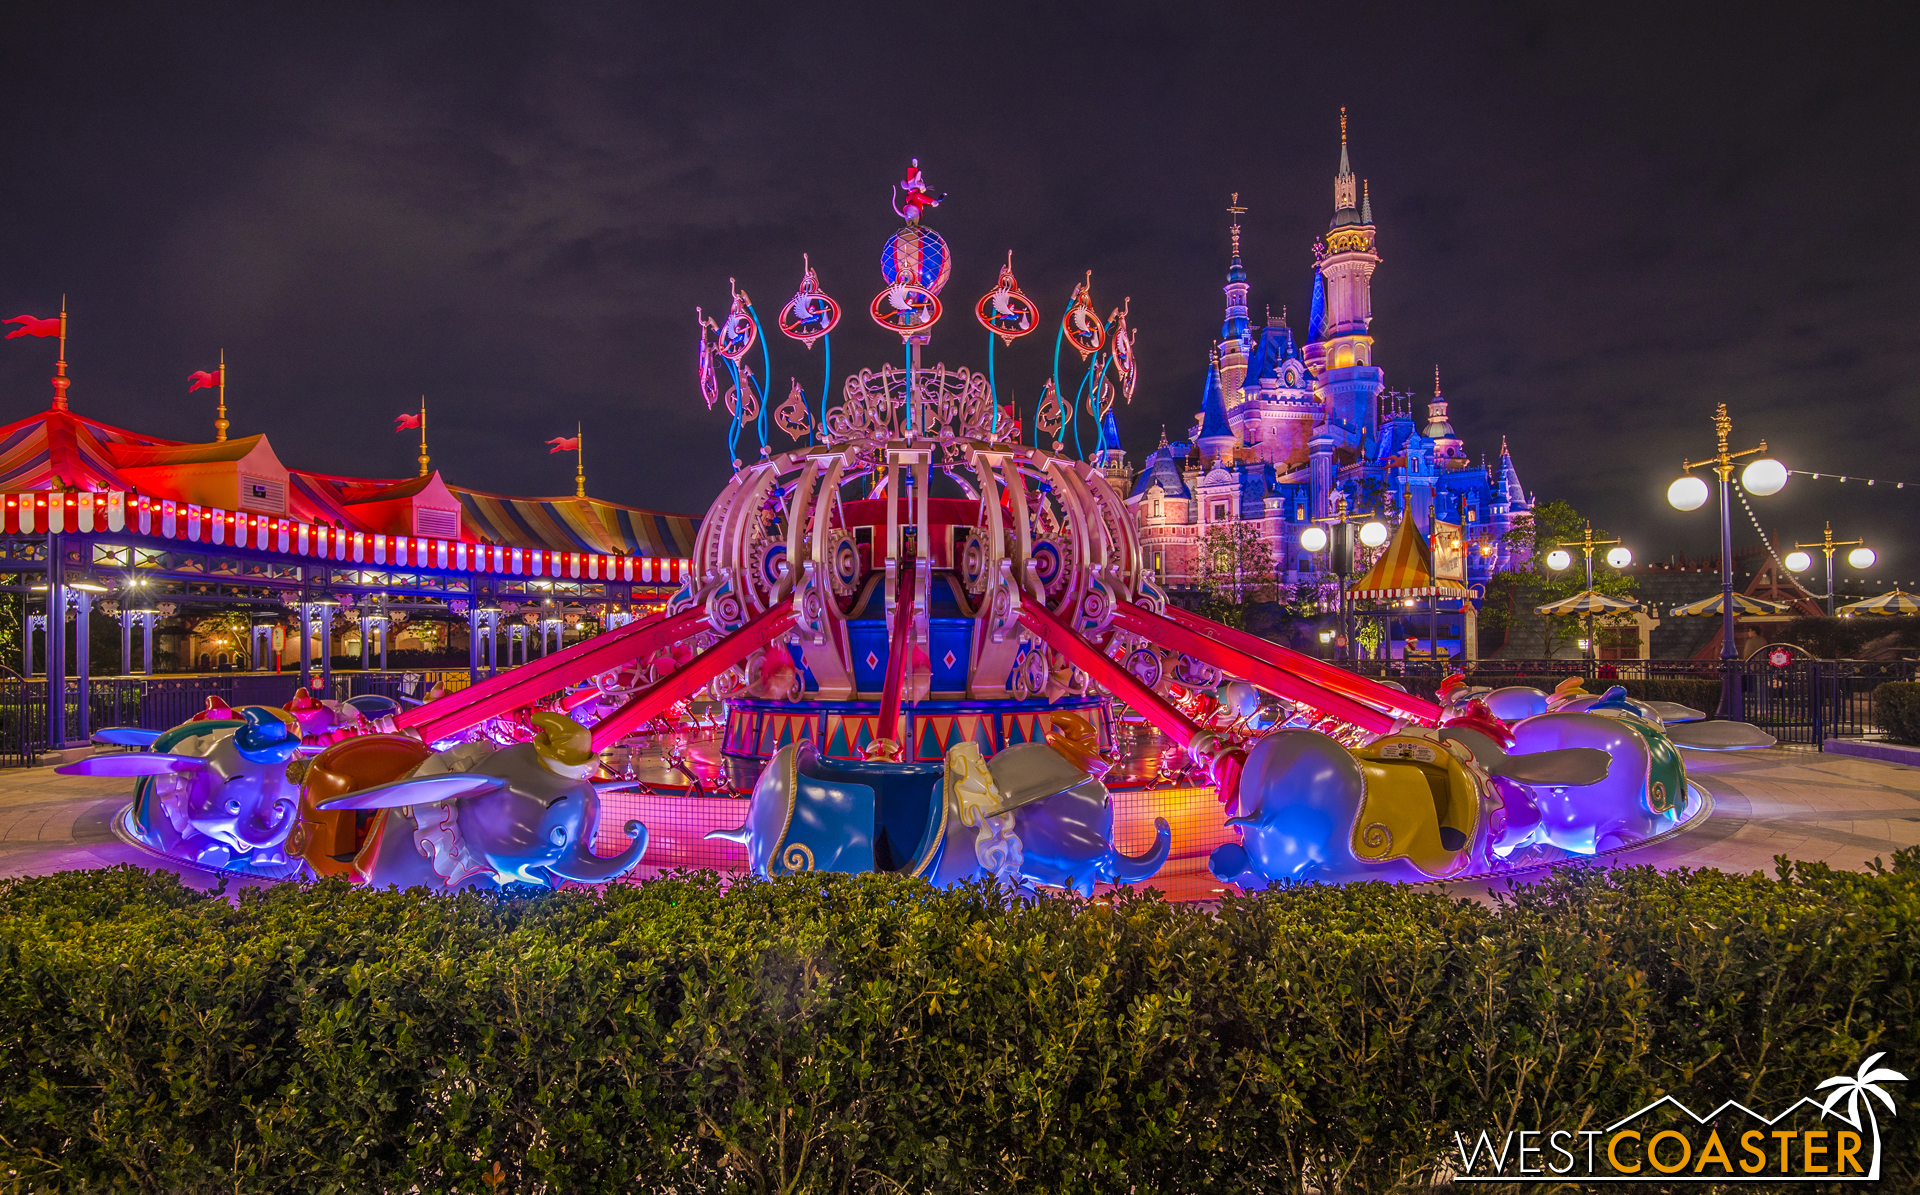 And it occupies a photogenic spot beside the Enchanted Storybook Castle!